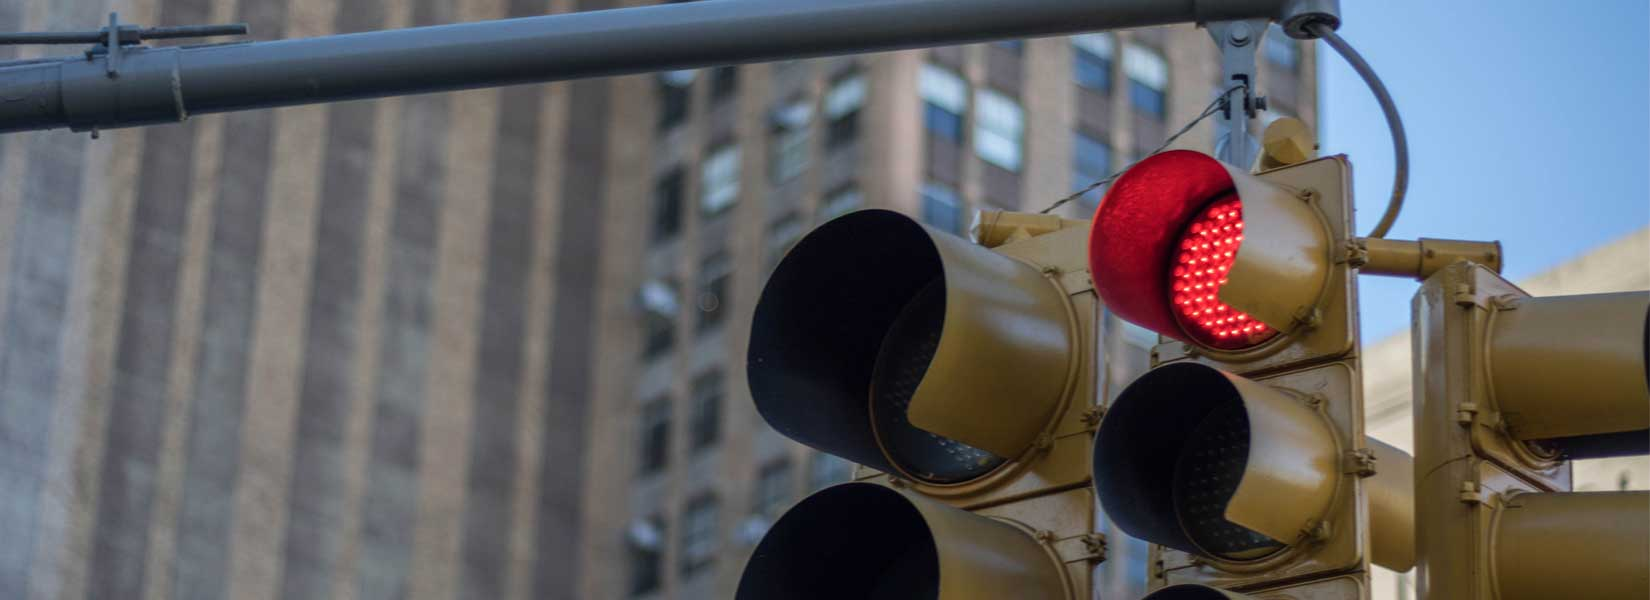 Picture of faulty traffic lights